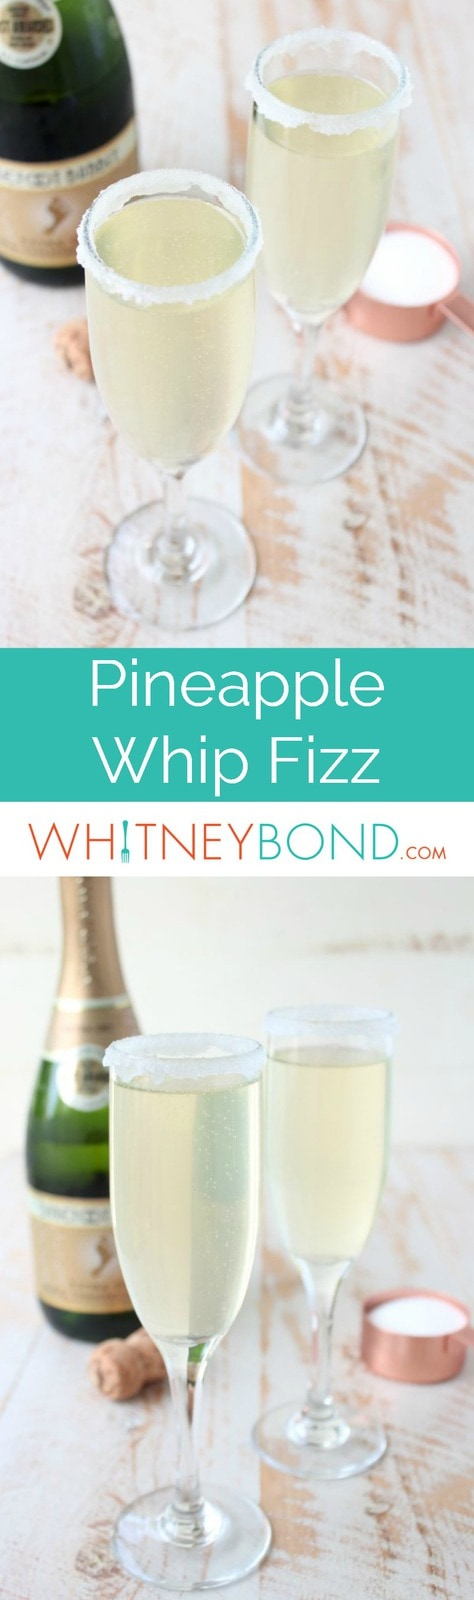 Disney's famous Pineapple Whip is turned into a delicious fizz cocktail in this simple 3-ingredient drink recipe, perfect for any special occasion!